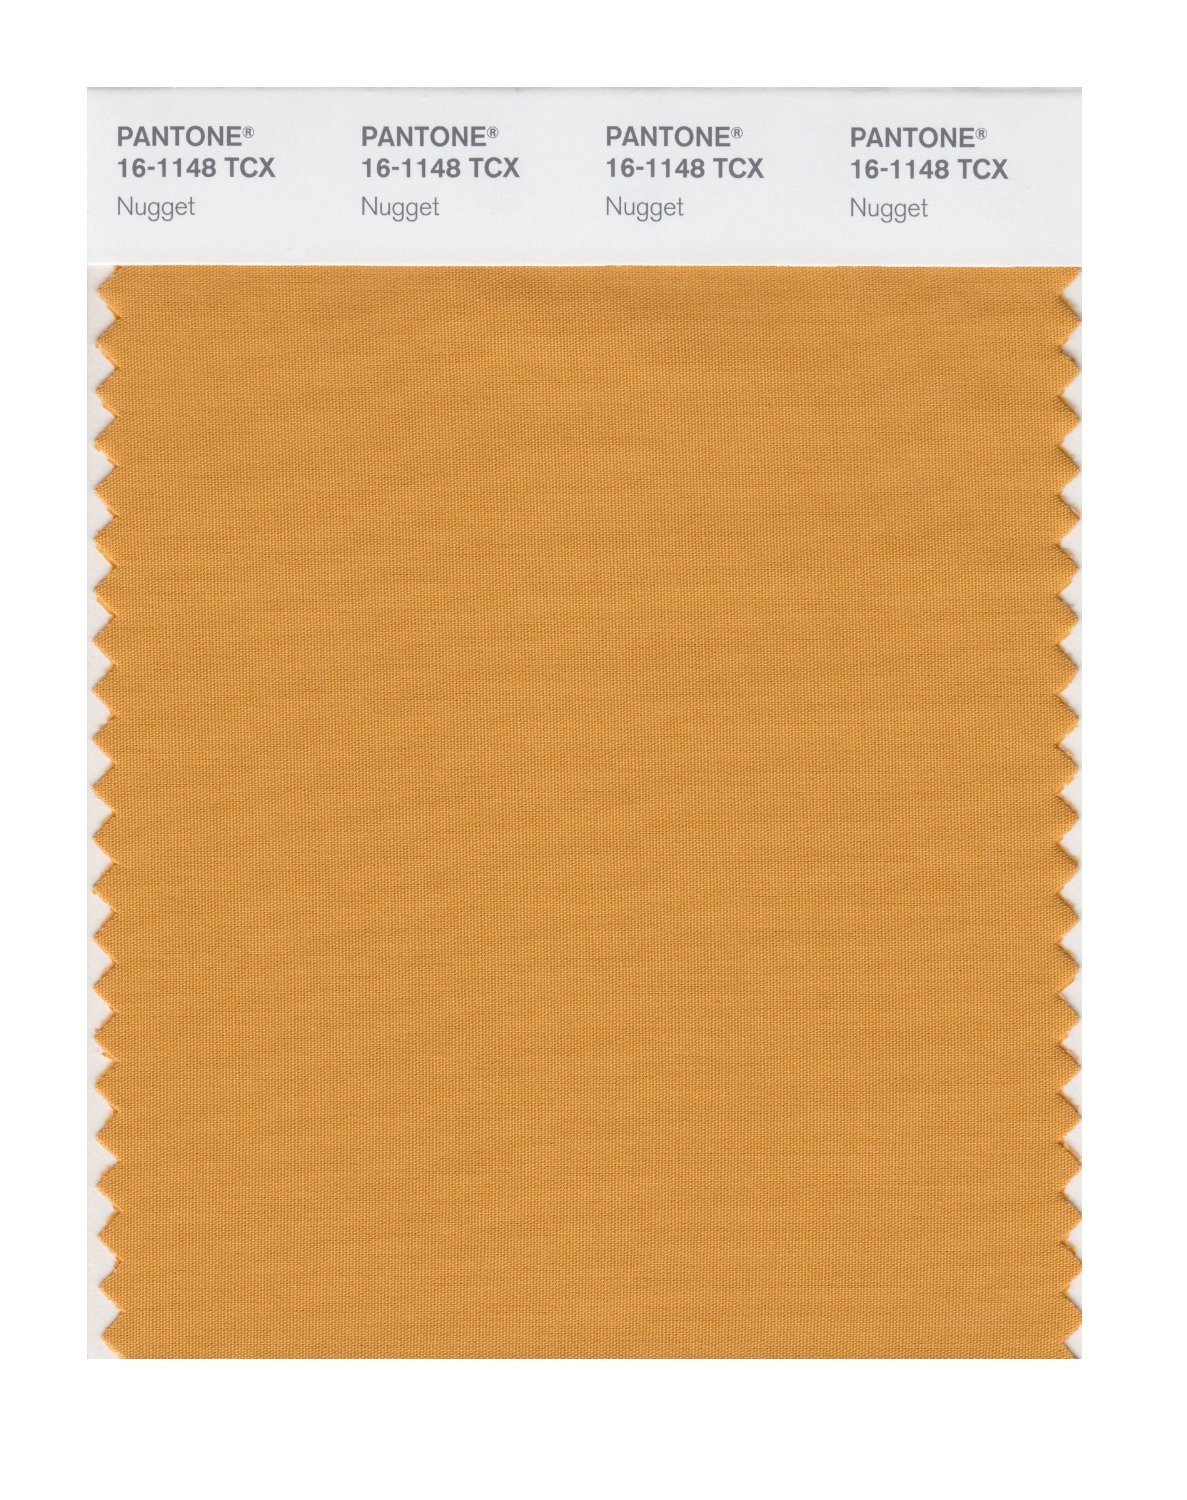 Pantone Smart Swatch 16-1148 Nugget